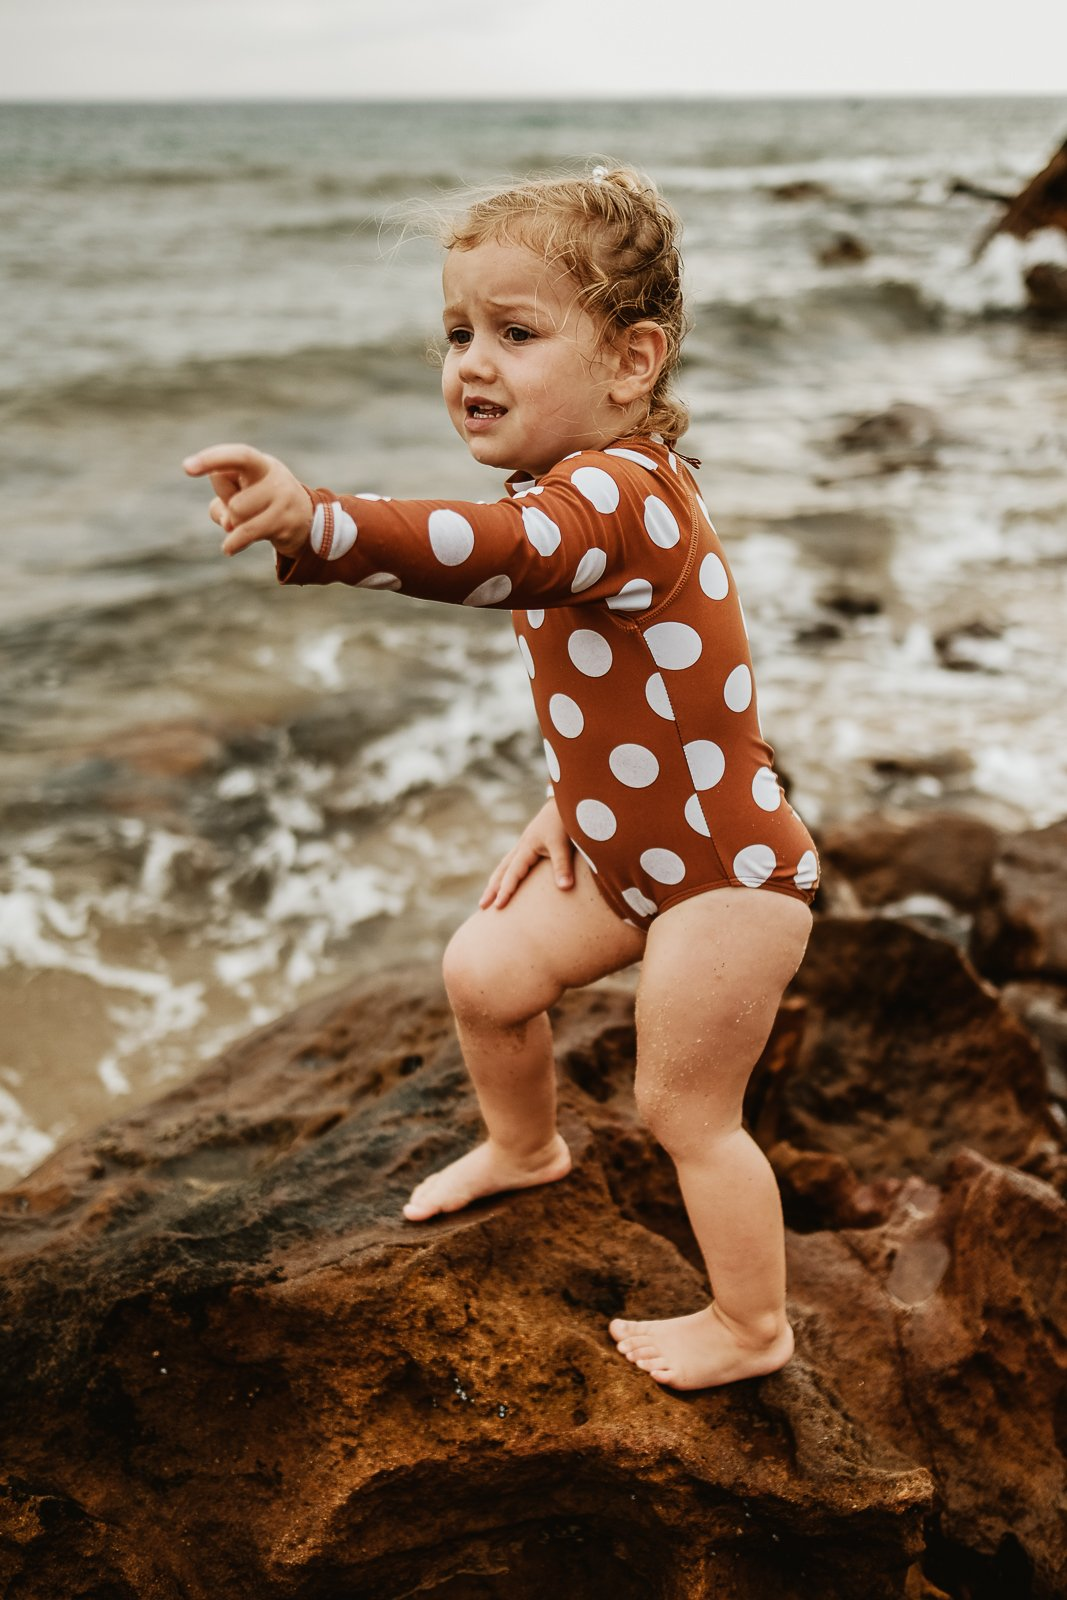 Julia_julia_cia clickin moms march forum photo contest toddler girl at the beach in polka dot swimsuit